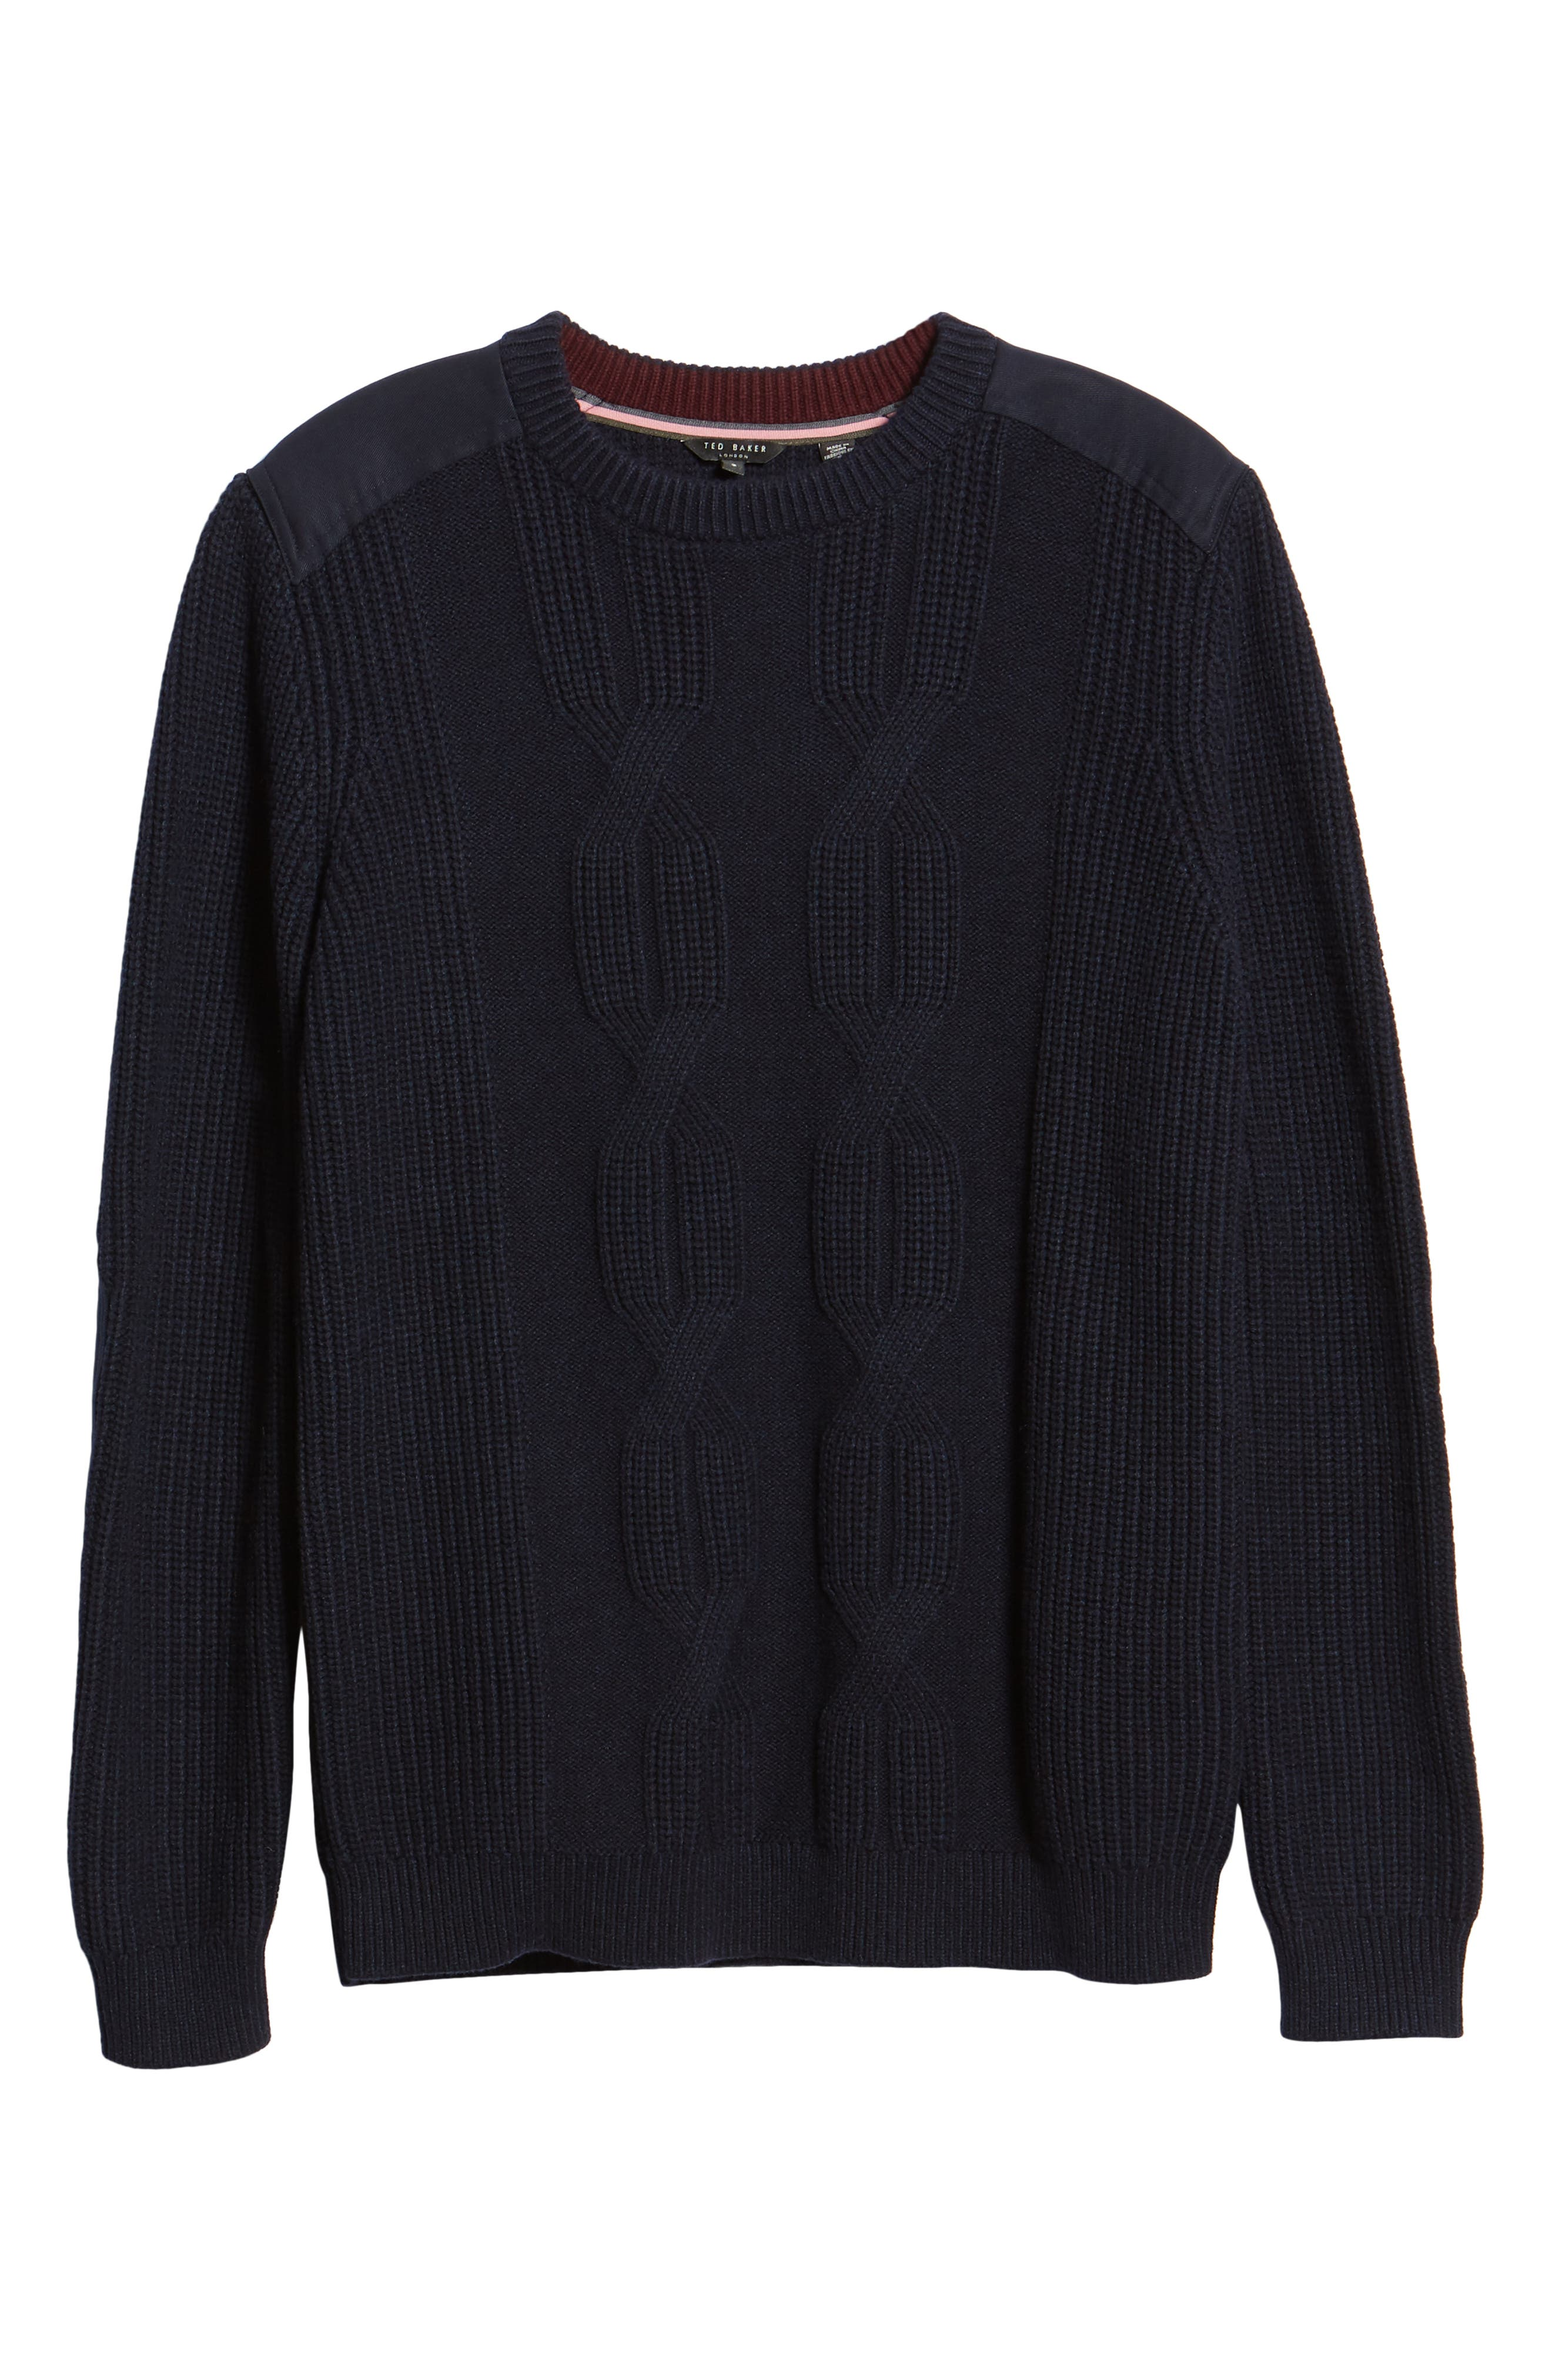 Laichi Trim Fit Cable Crewneck Sweater,                             Alternate thumbnail 6, color,                             NAVY